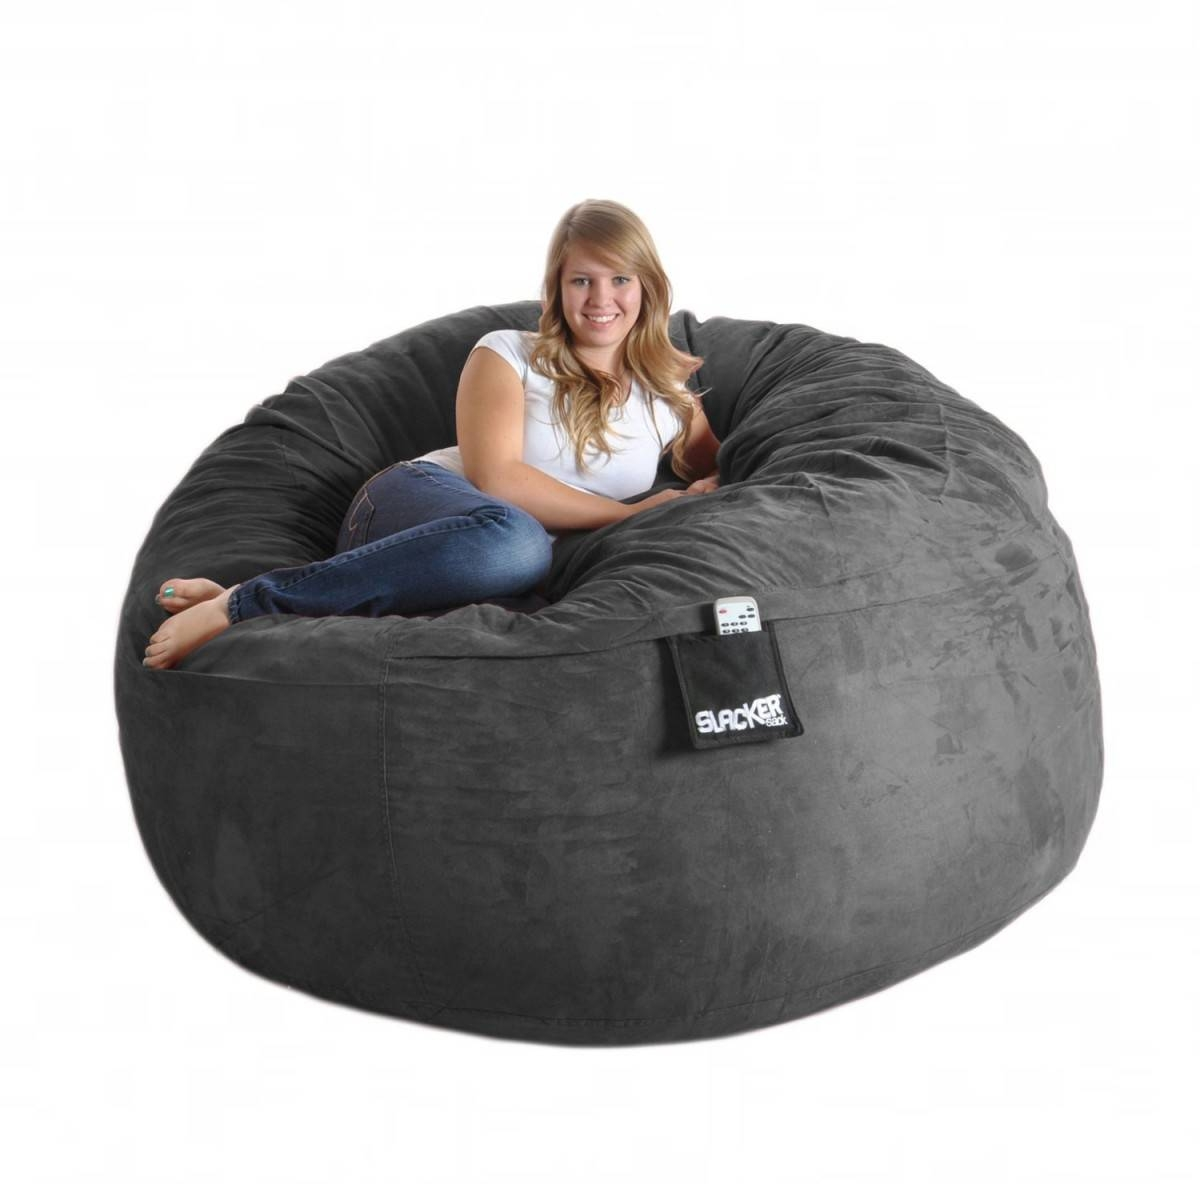 Beautiful Giant Bean Bag Chair In Interior Design For Home With throughout Giant Bean Bag Chairs (Image 2 of 15)